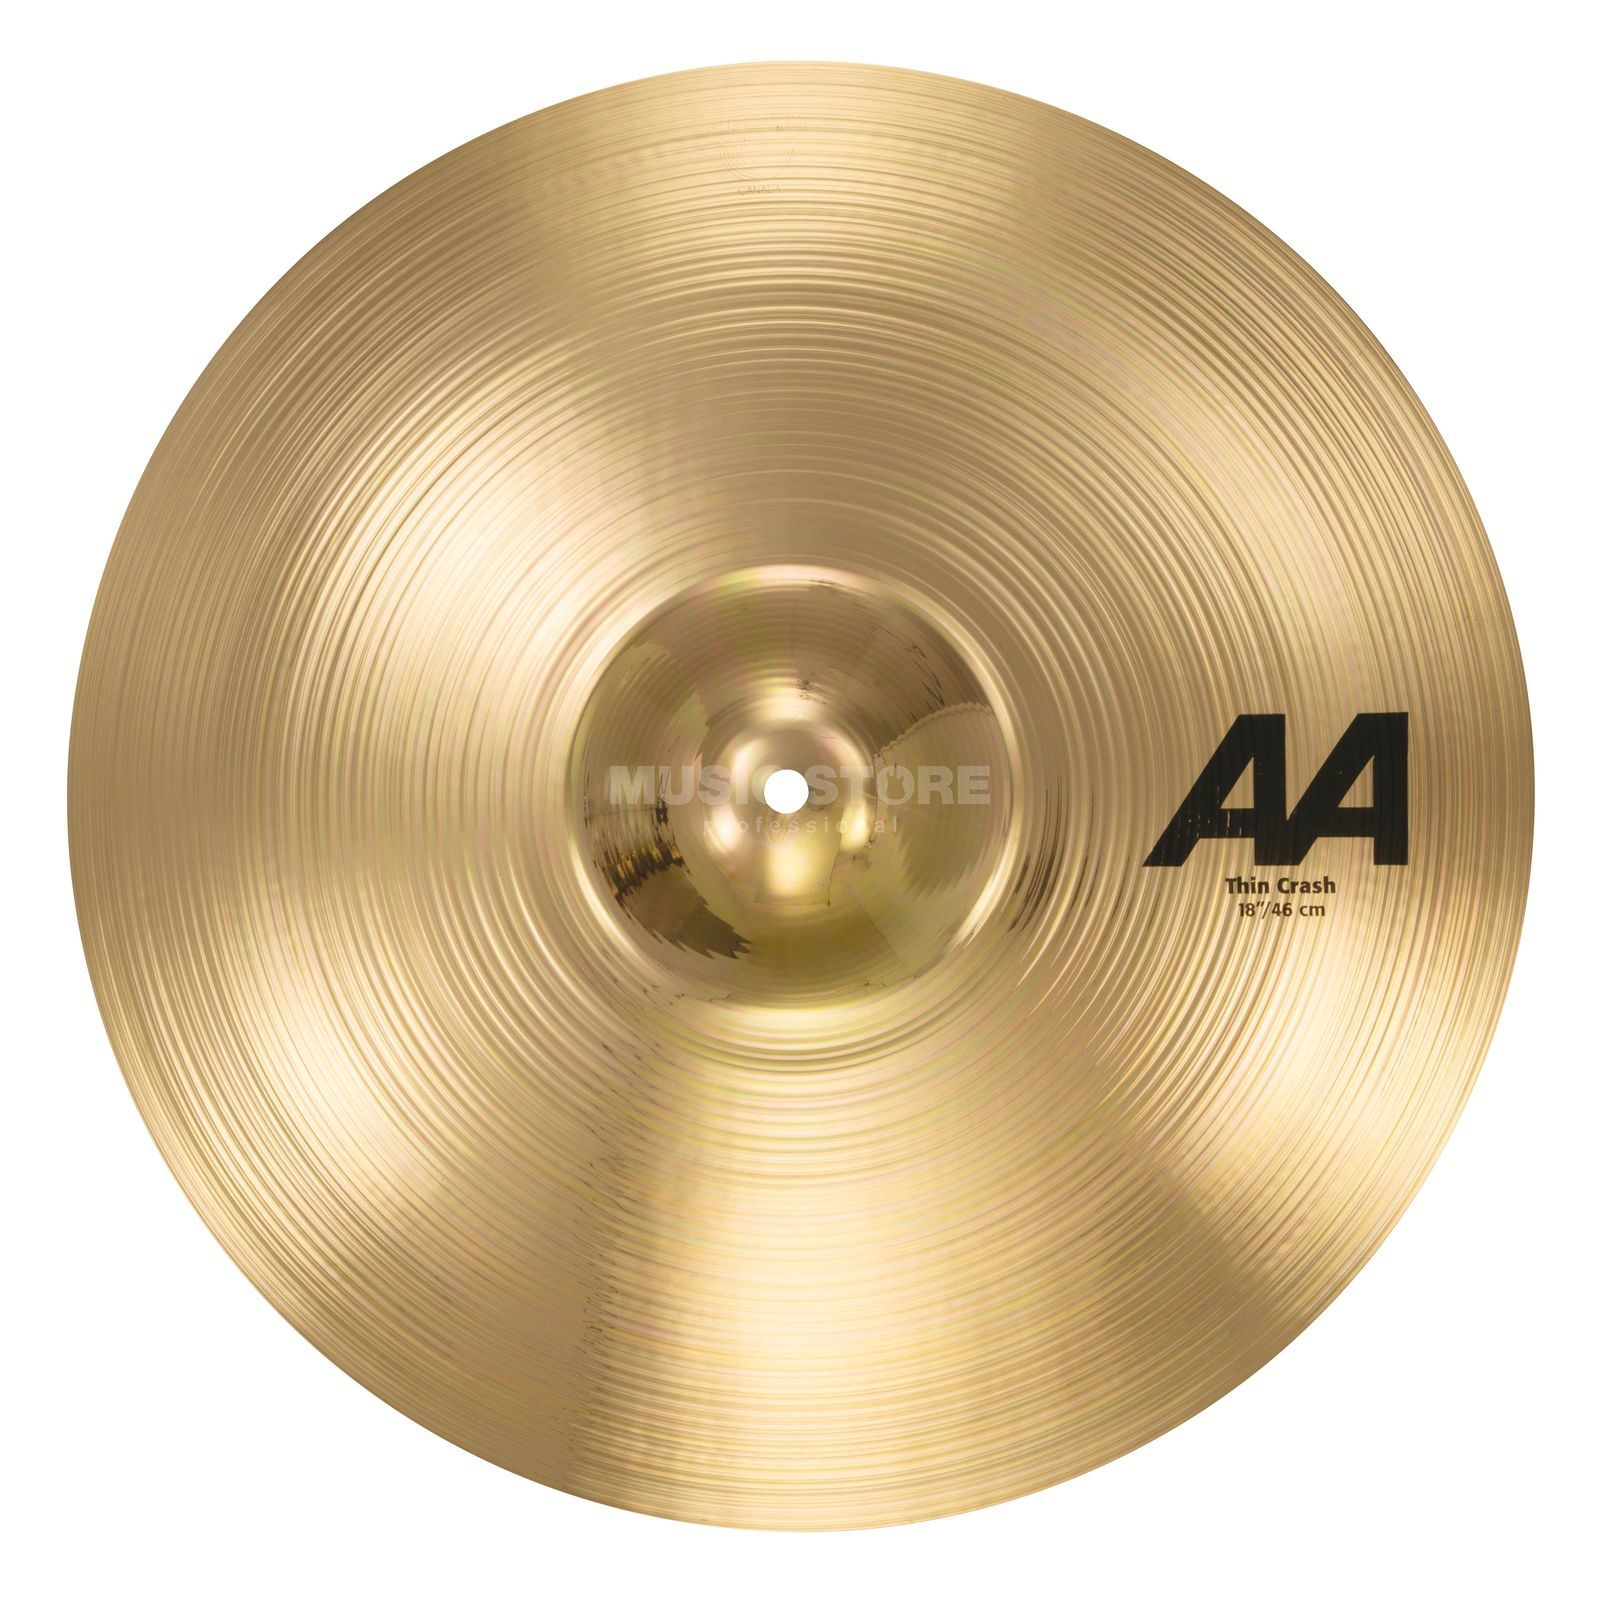 "Sabian AA Thin Crash 18"" Brilliant Finish Produktbillede"